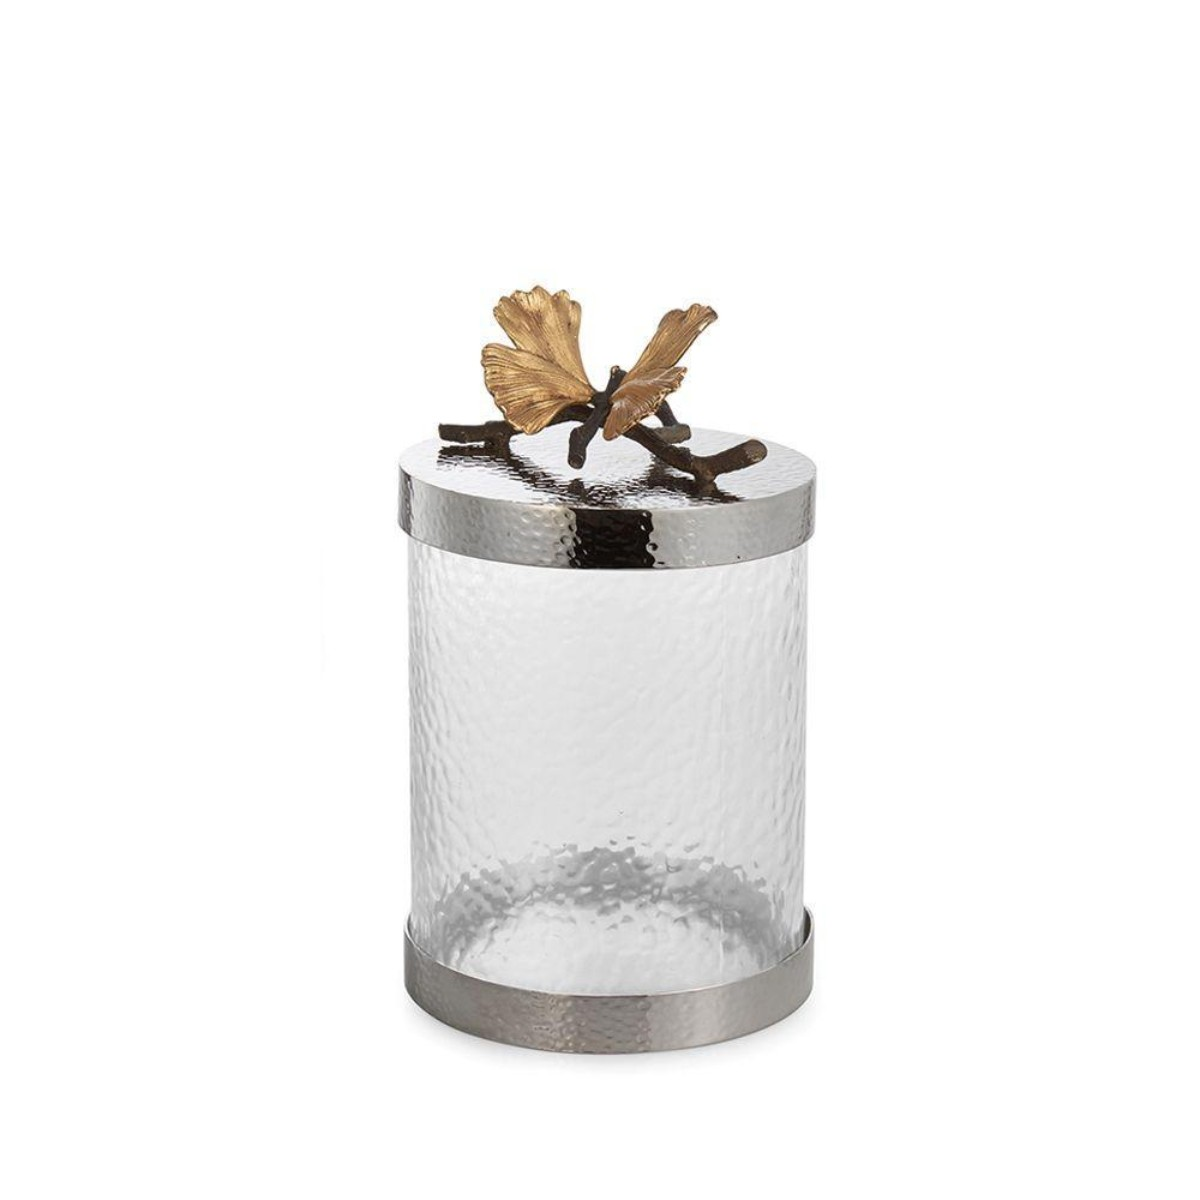 Michael Aram | Butterfly Ginkgo Canister Small